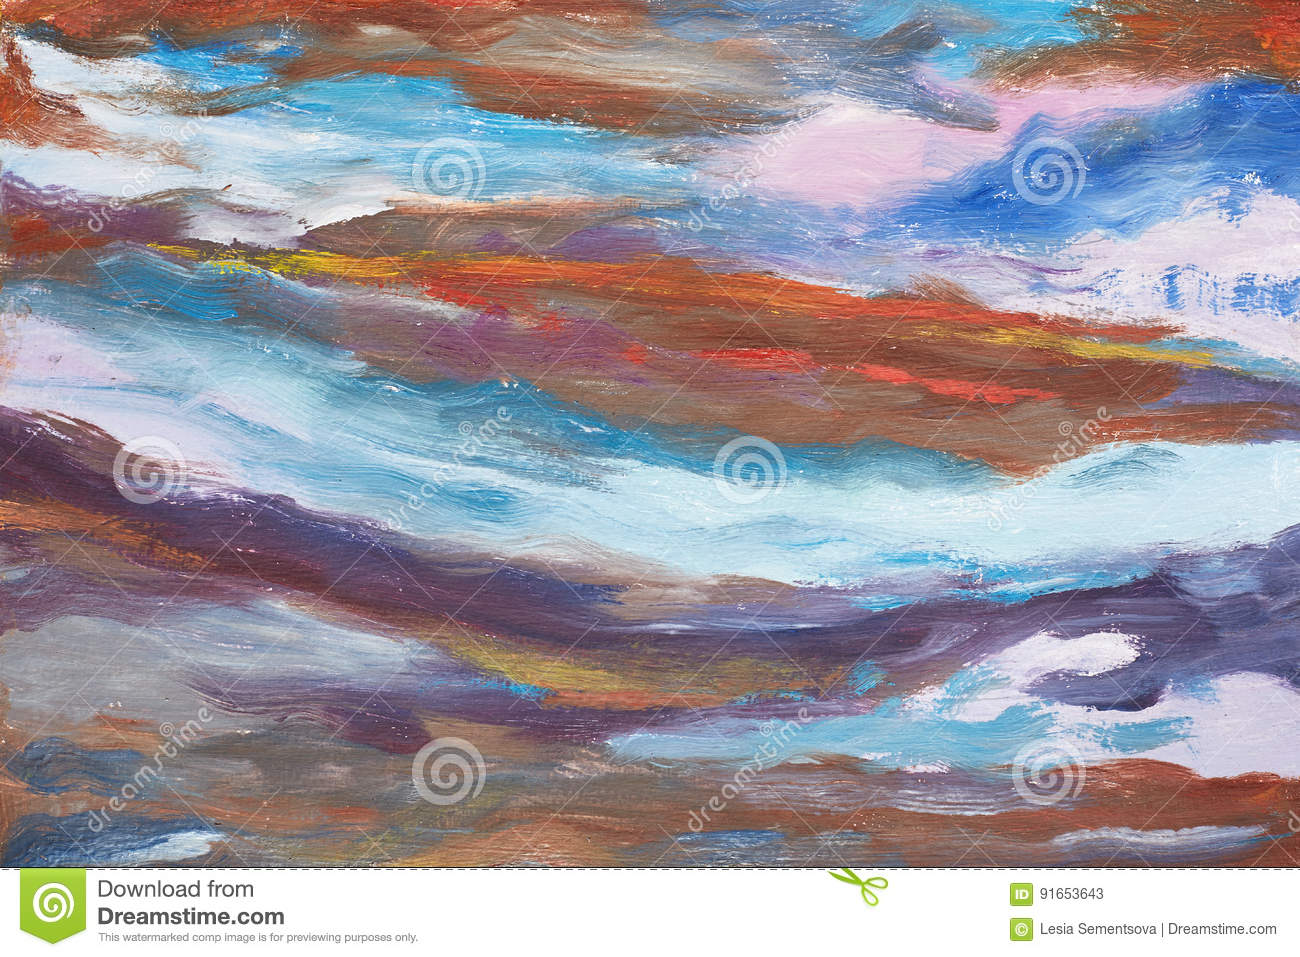 A picture of abstract waves. Hand drawn oil painting. A work of painter. A landscape of water. Colorful background oil painting